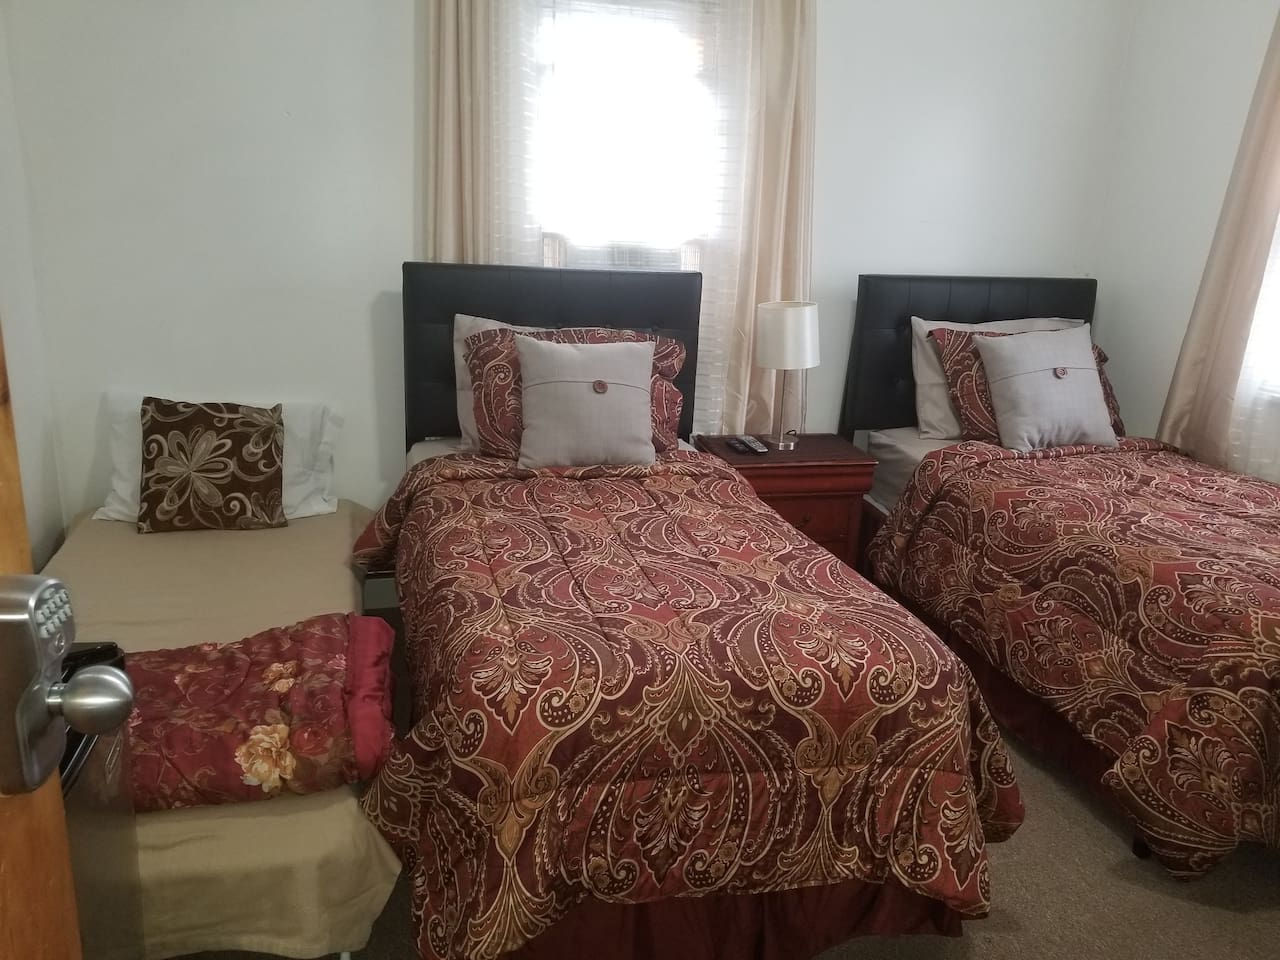 2 twin beds showing  in trplb room.Folding guest bed for 3rd guest(if requested) shown at far left